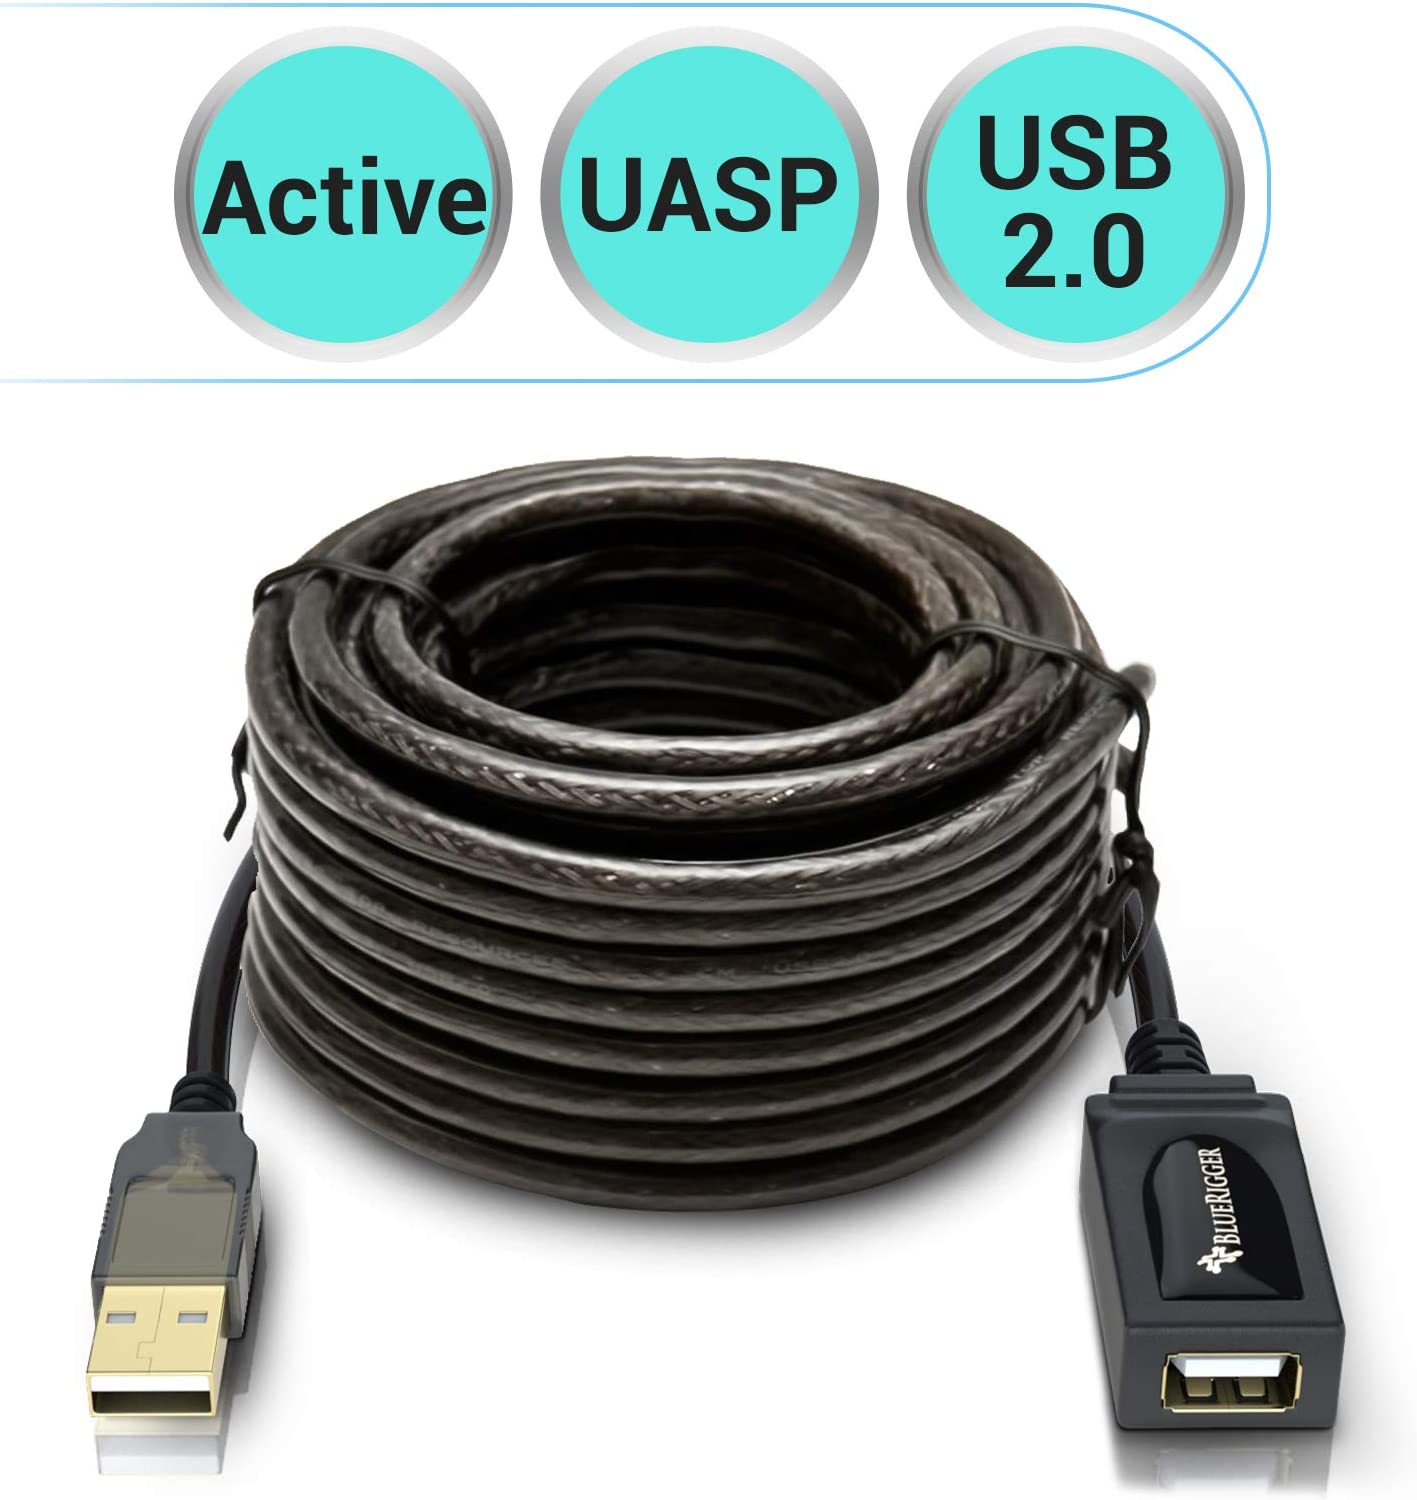 Computer Cables USB 2.0 Active Repeater Male to Female Extension Cable Adapter Cord 5M//10M//15M//20M Cable Length: 15m